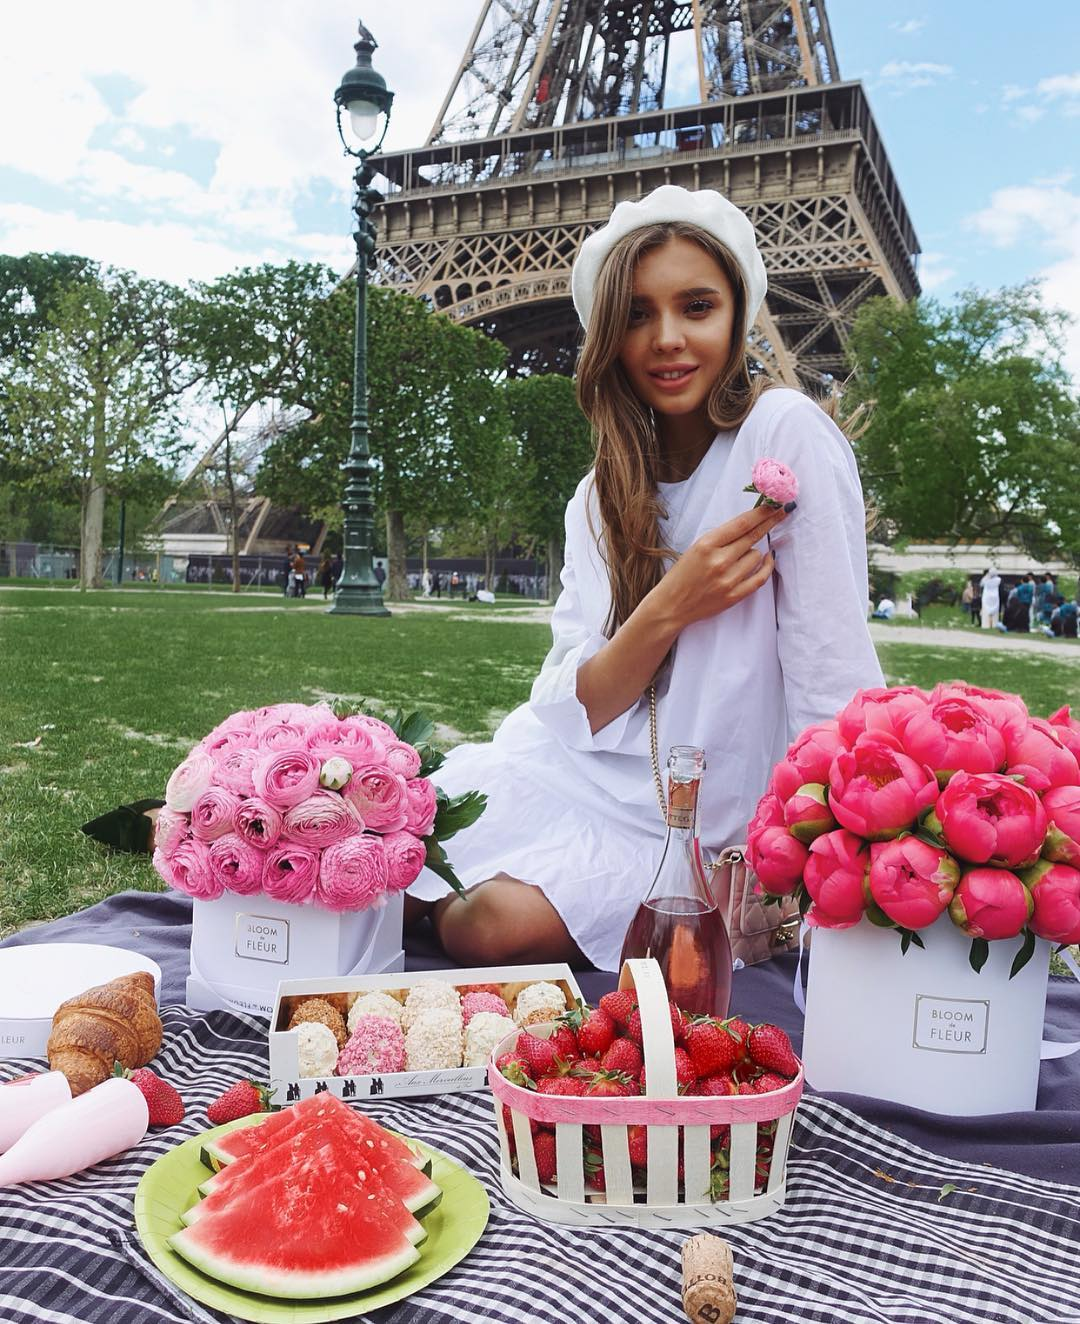 Perfect White Dress For Summer Paris Vacation 2020